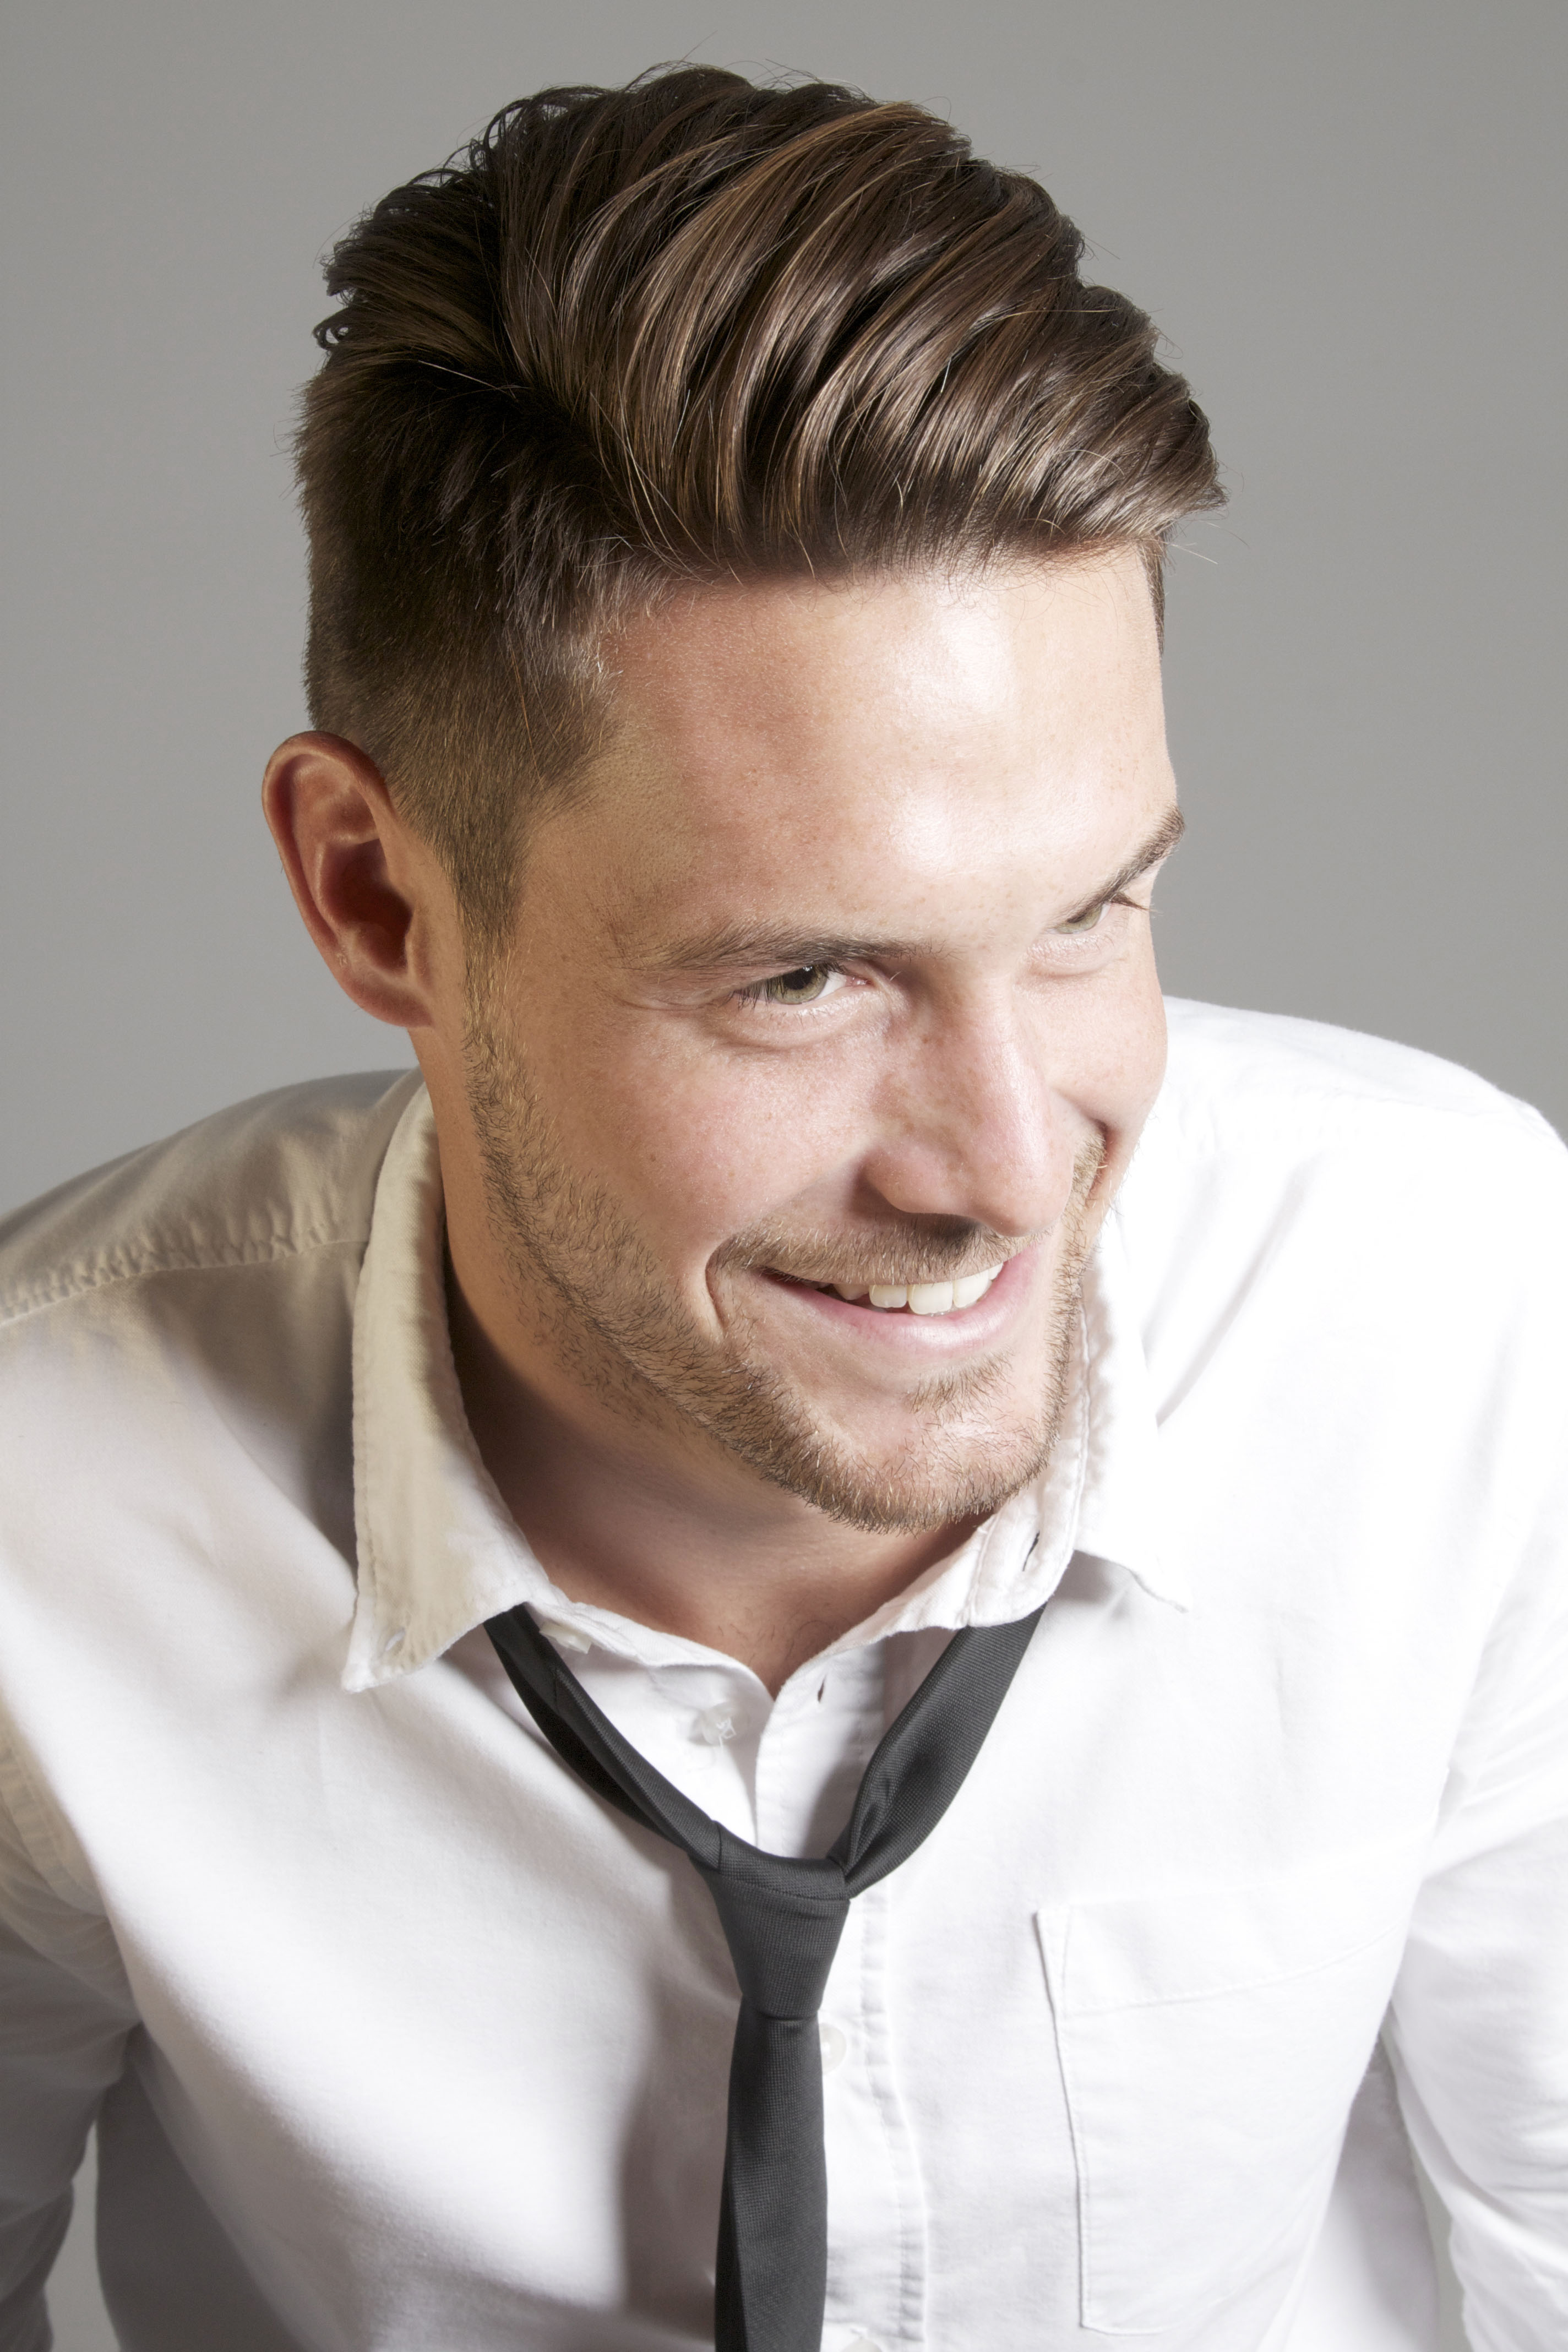 Best Hairstyles for Men Comb Over